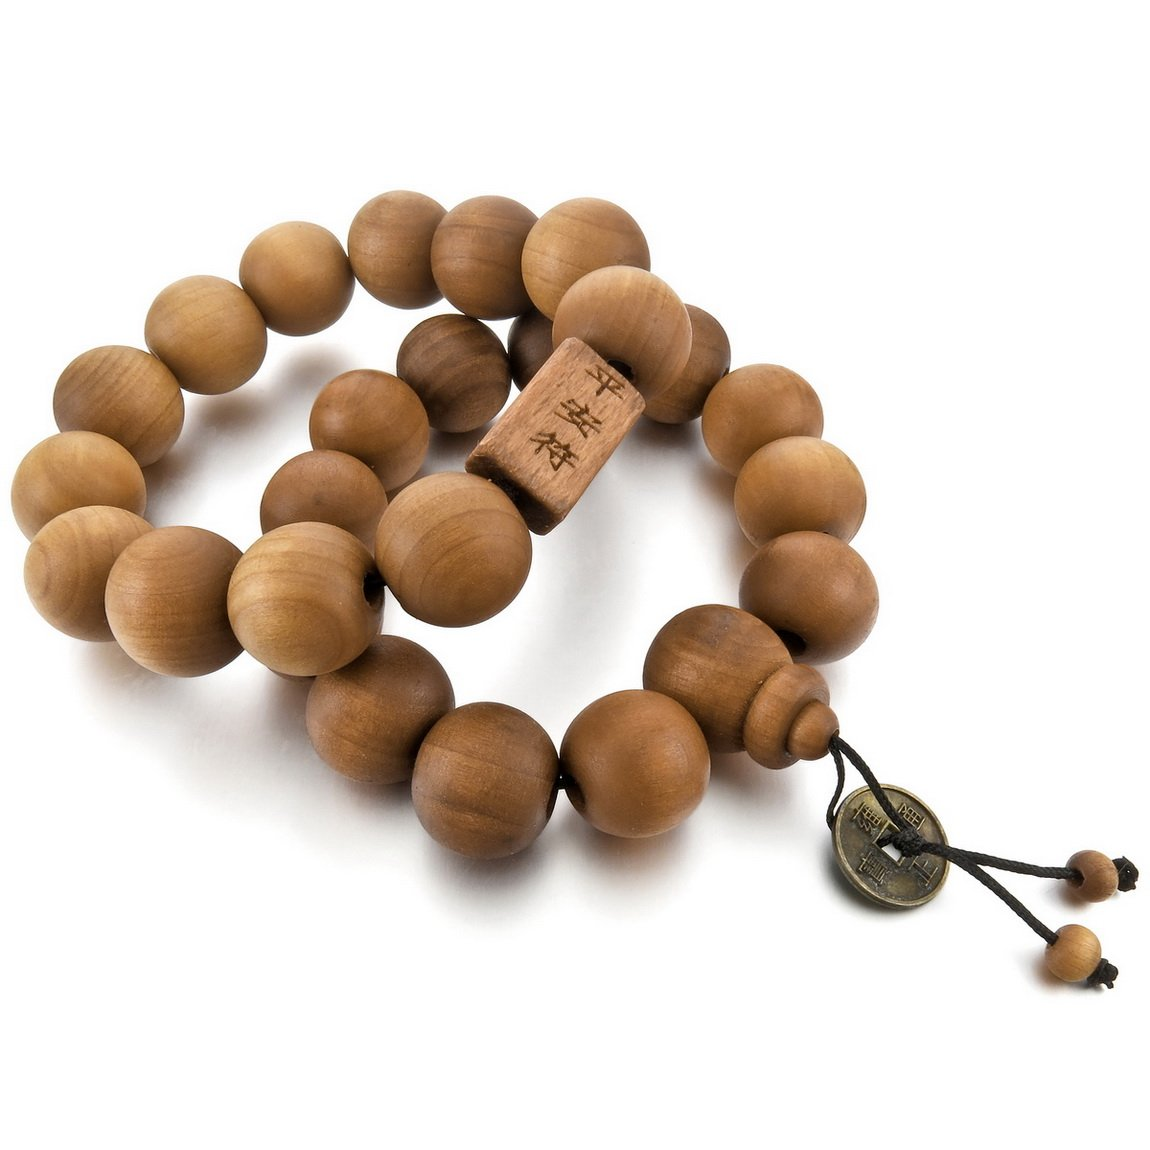 INBLUE Men, Women's 2 PCS Wood Bracelet Link Wrist Tibetan Buddhist Brown Bead Prayer Buddha Mala Elastic INBLUE Jewelry mnb1055